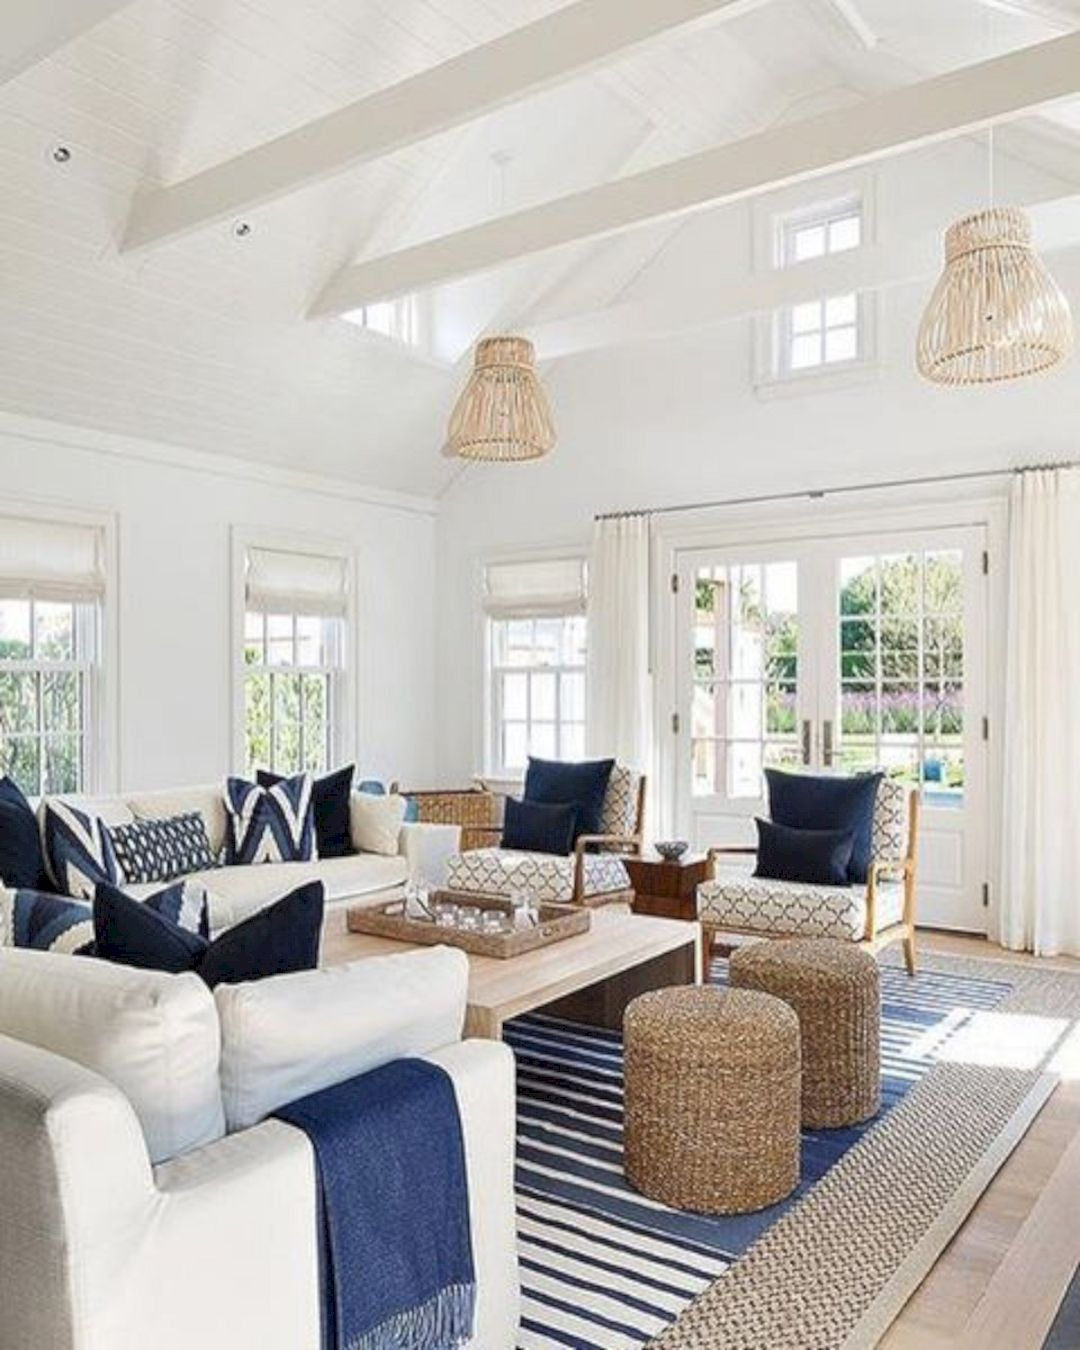 family room interior design on 15 decorating ideas for a chic family room coastal living rooms coastal decorating living room coastal living room coastal decorating living room